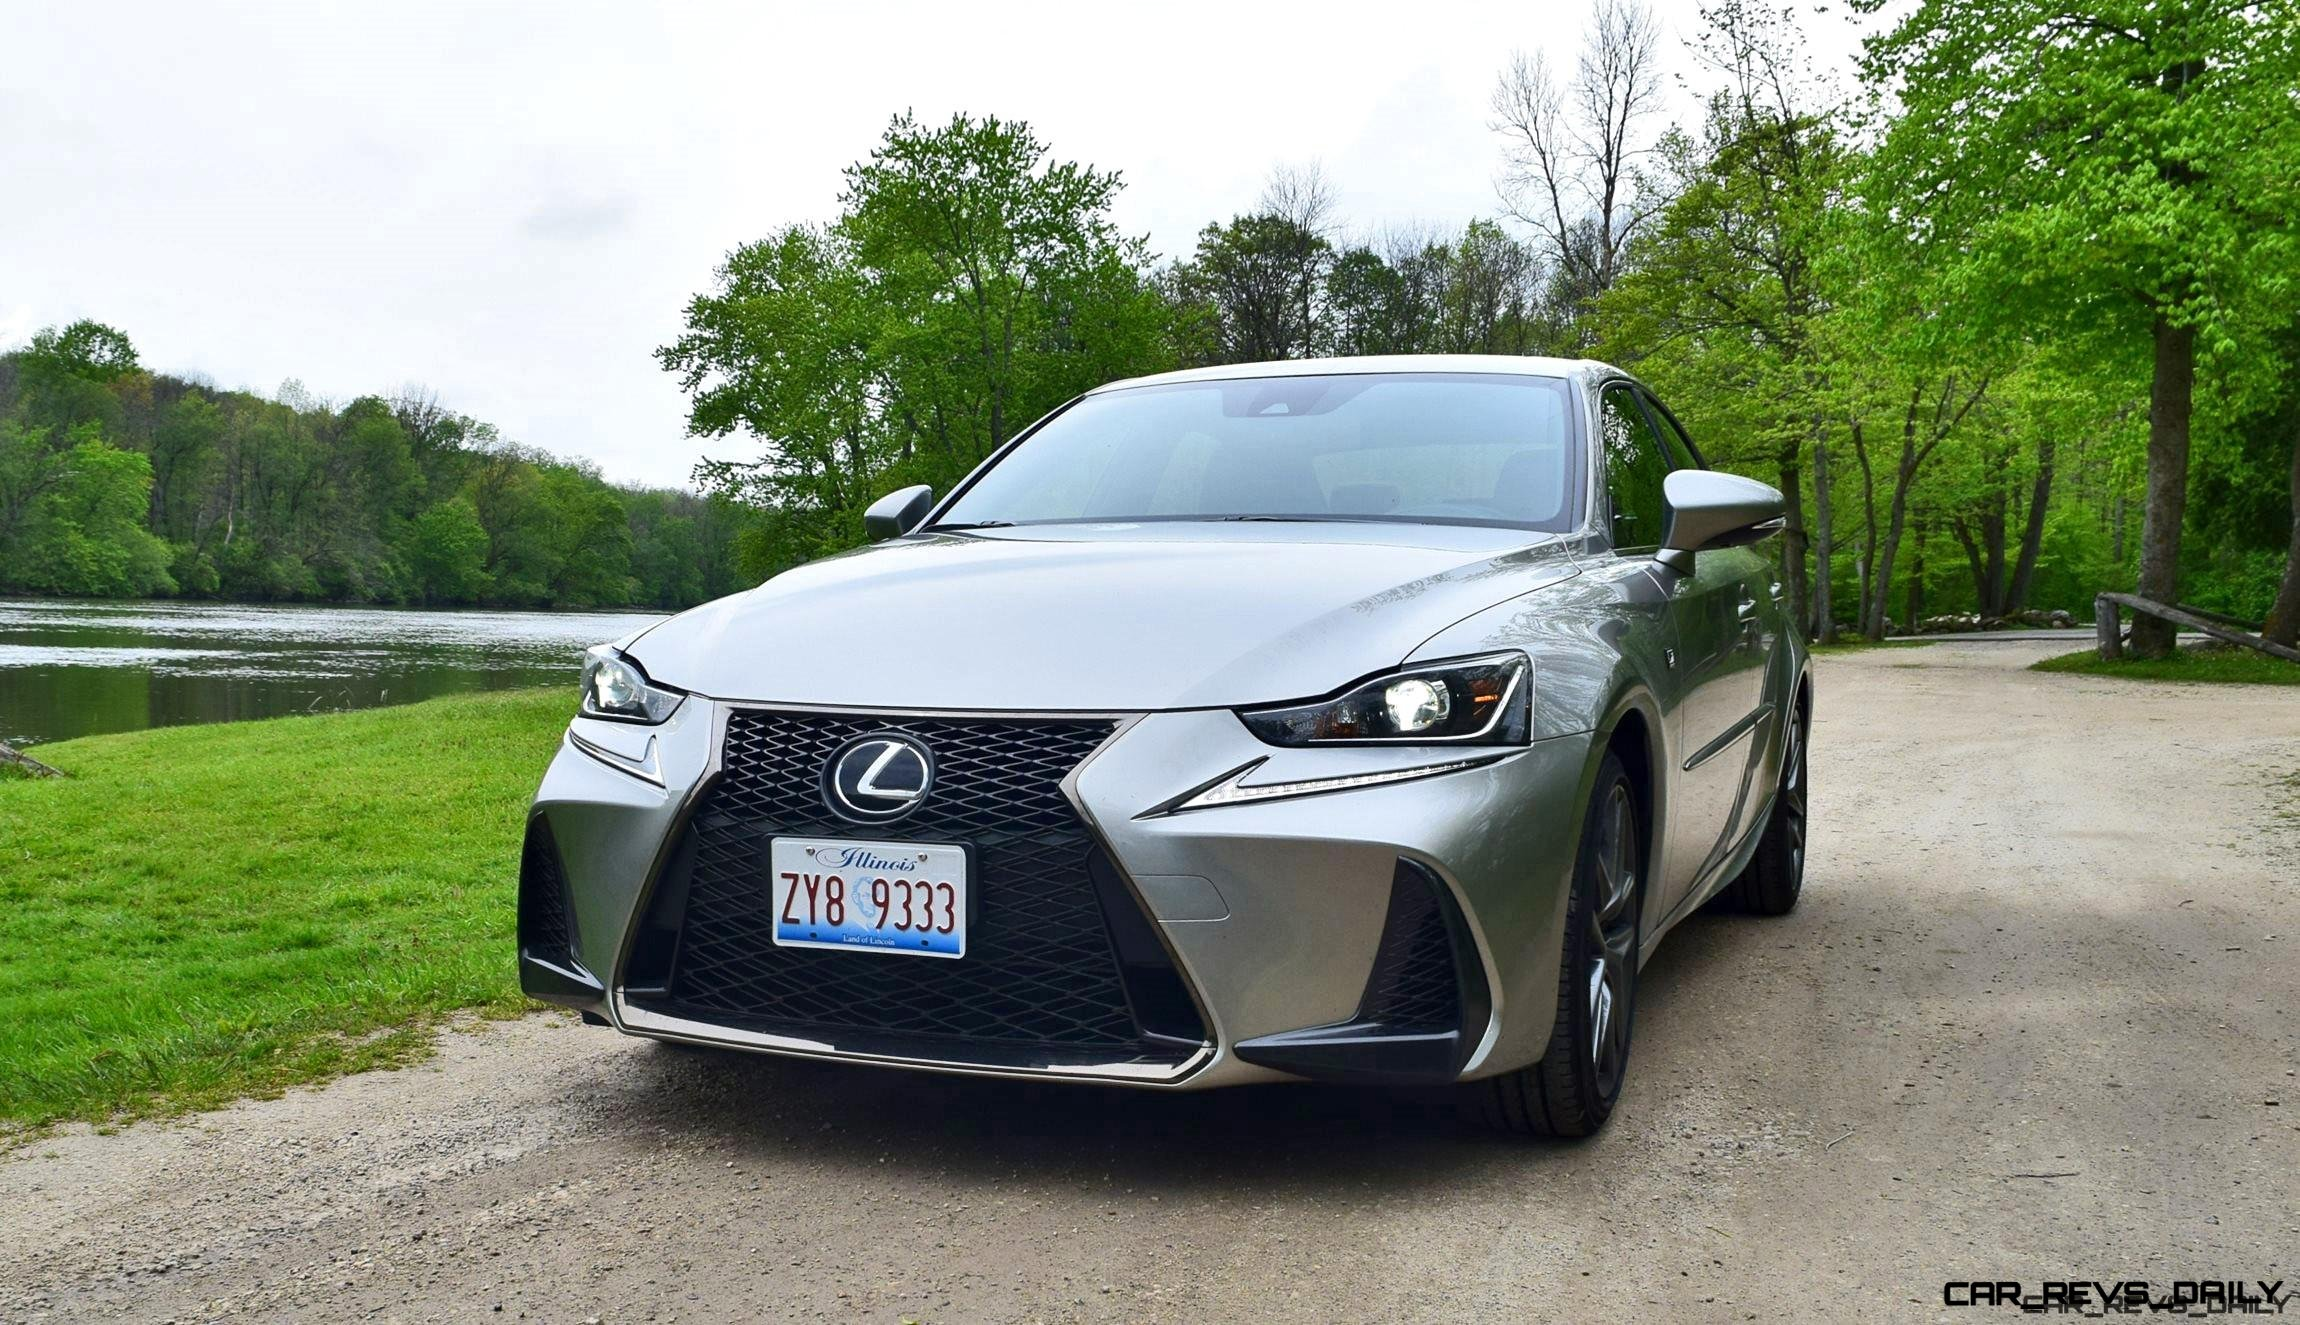 2017 Lexus Is350 F Sport Rwd Road Test Review Performance Drive Video